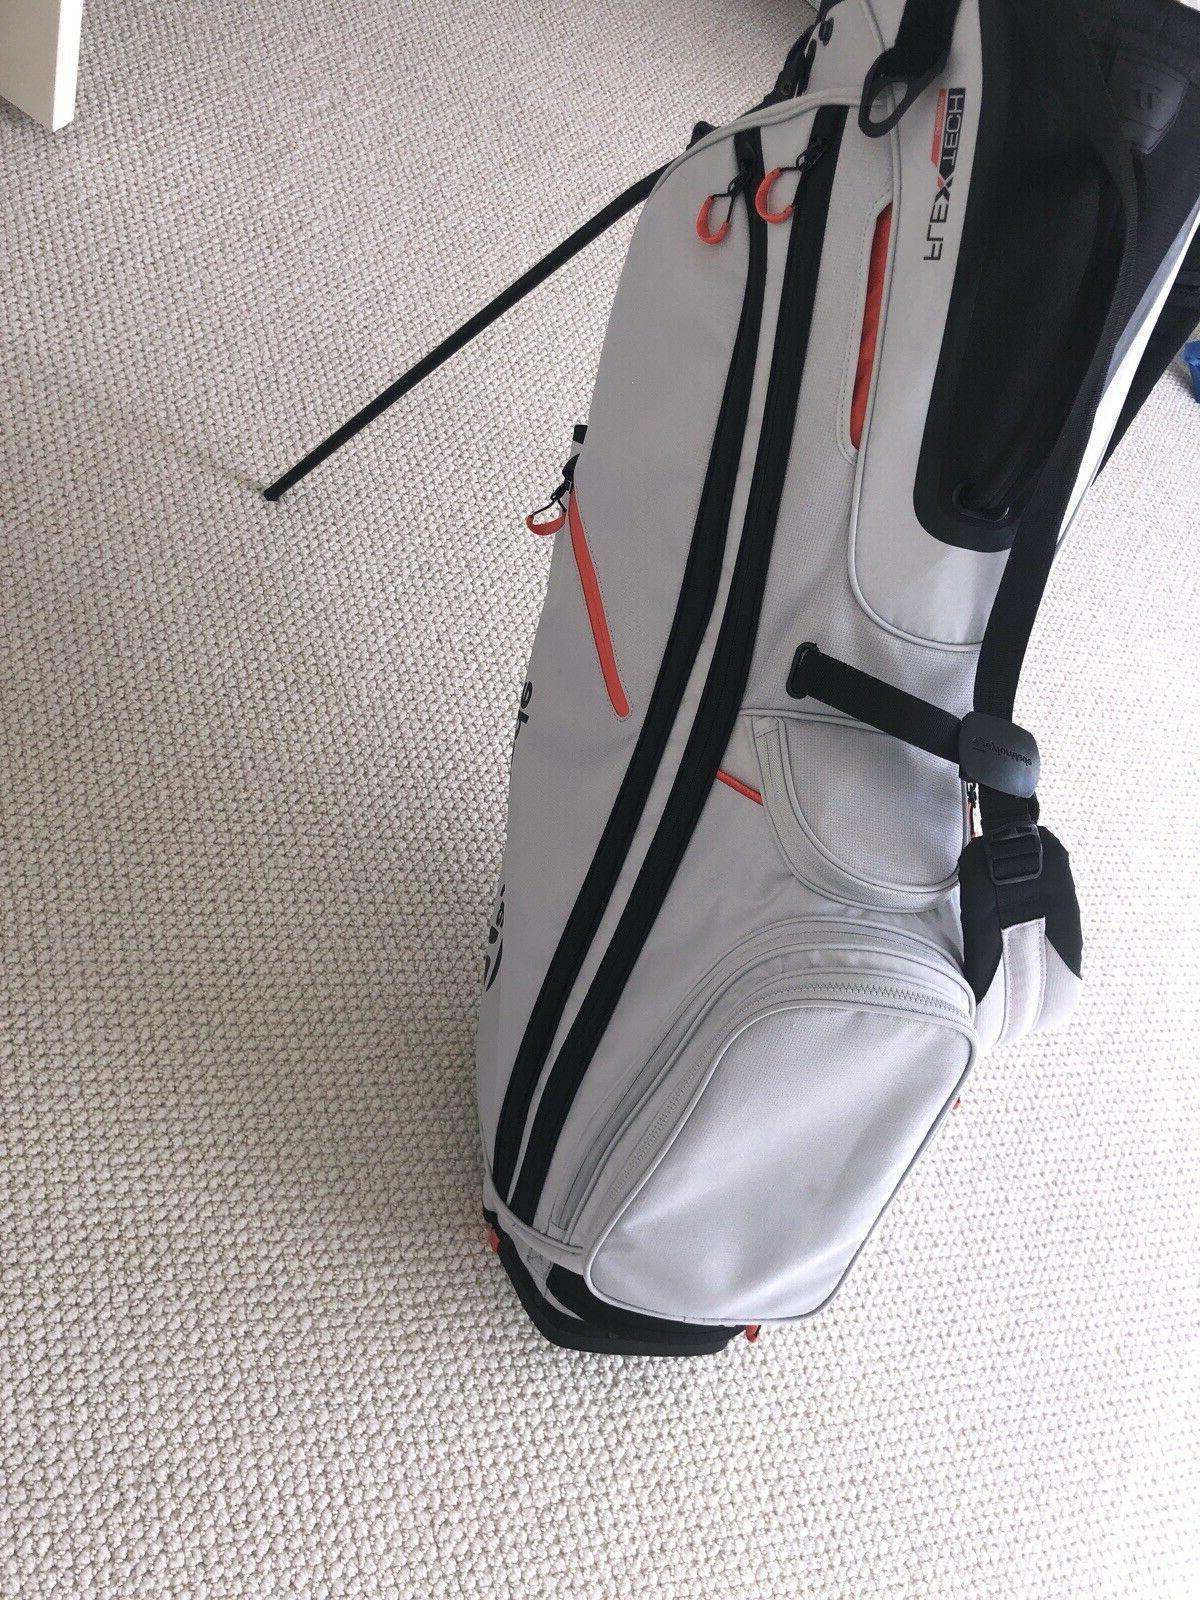 TaylorMade Crossover Stand Silver Blood